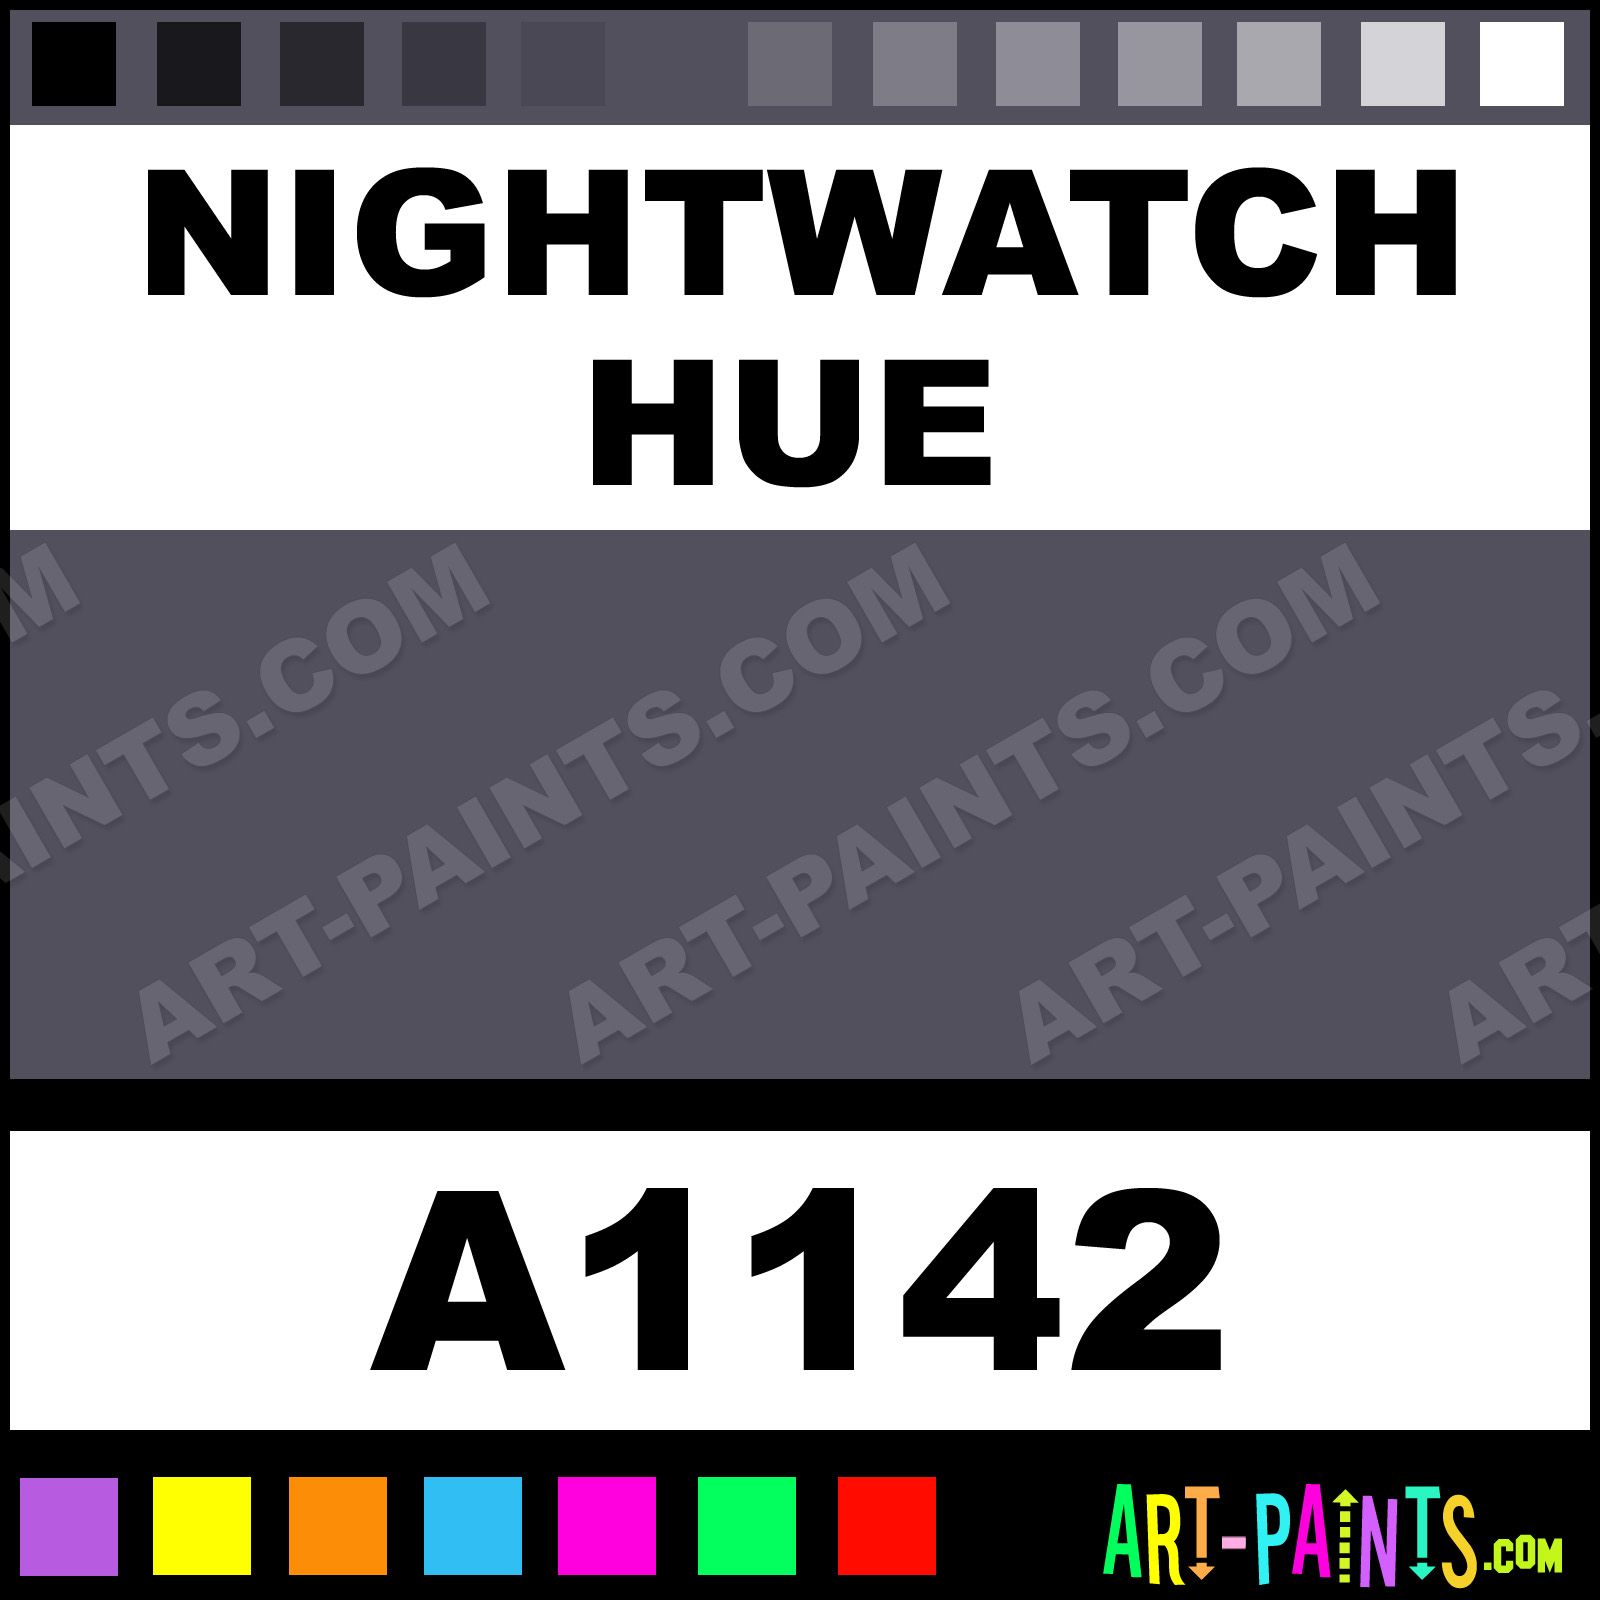 Nightwatch ultra ceramic ceramic porcelain paints a1142 - Night watch paint color ...